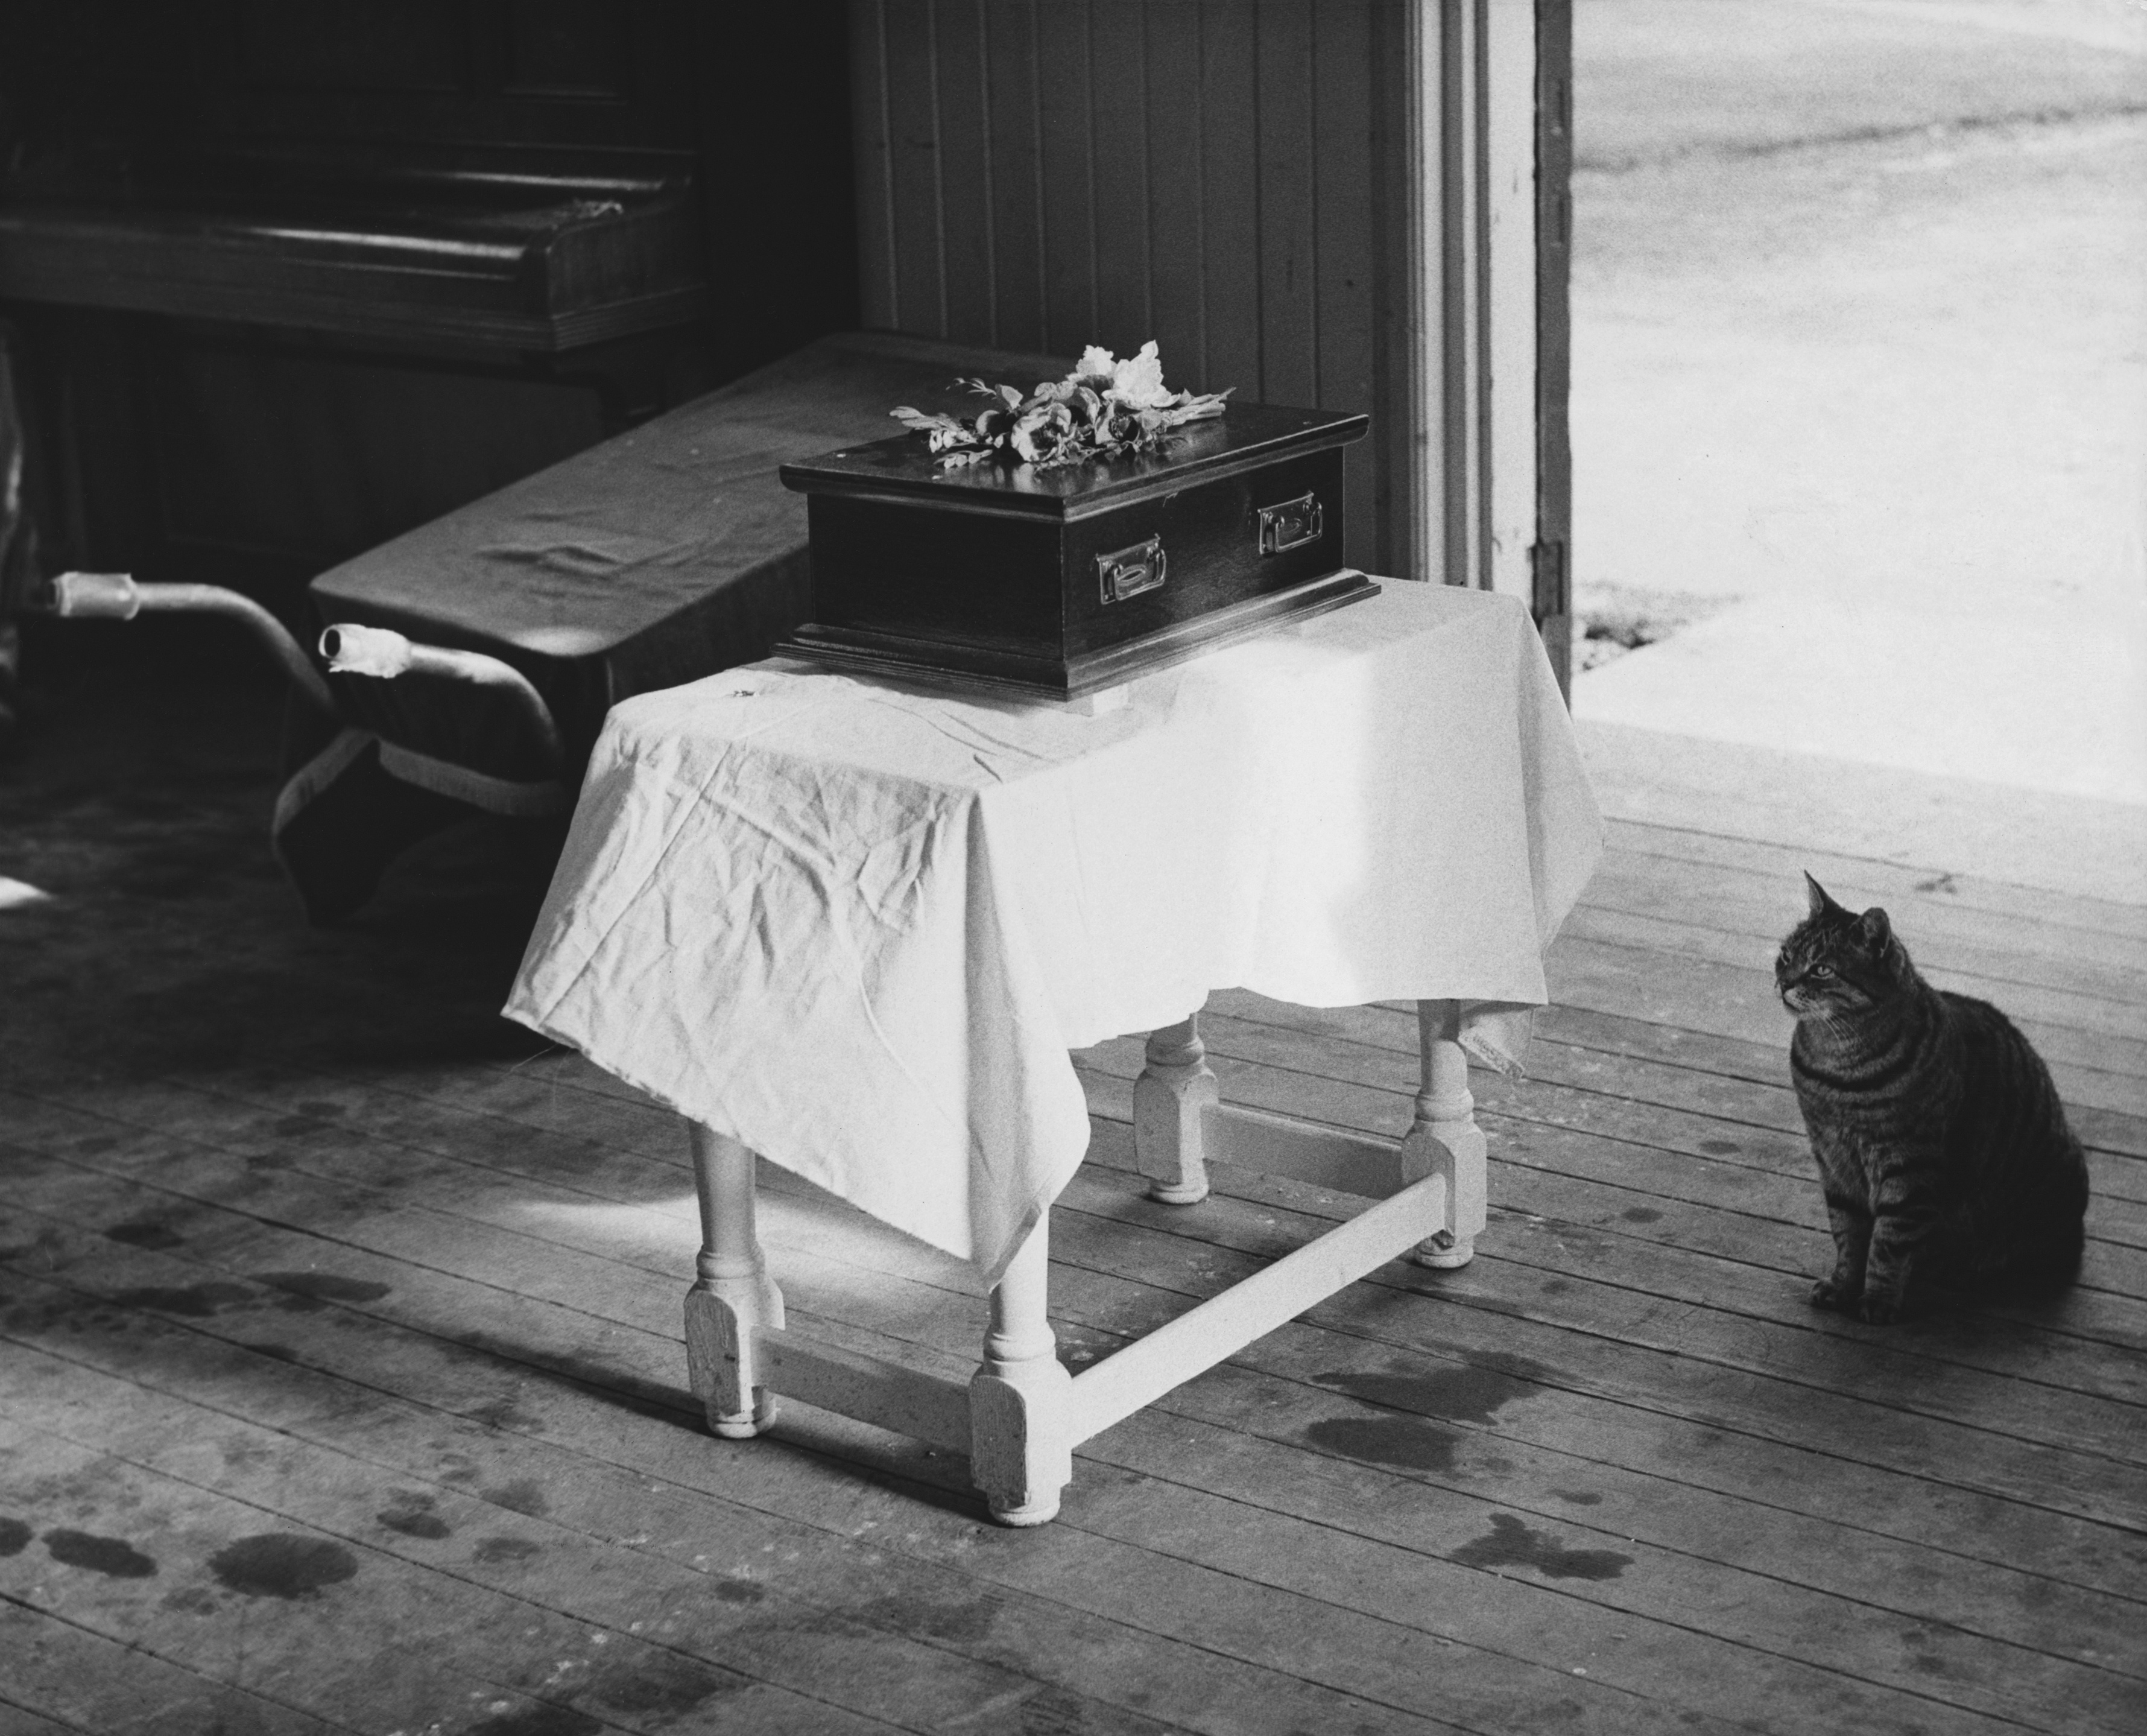 Cat Pays Final Respects